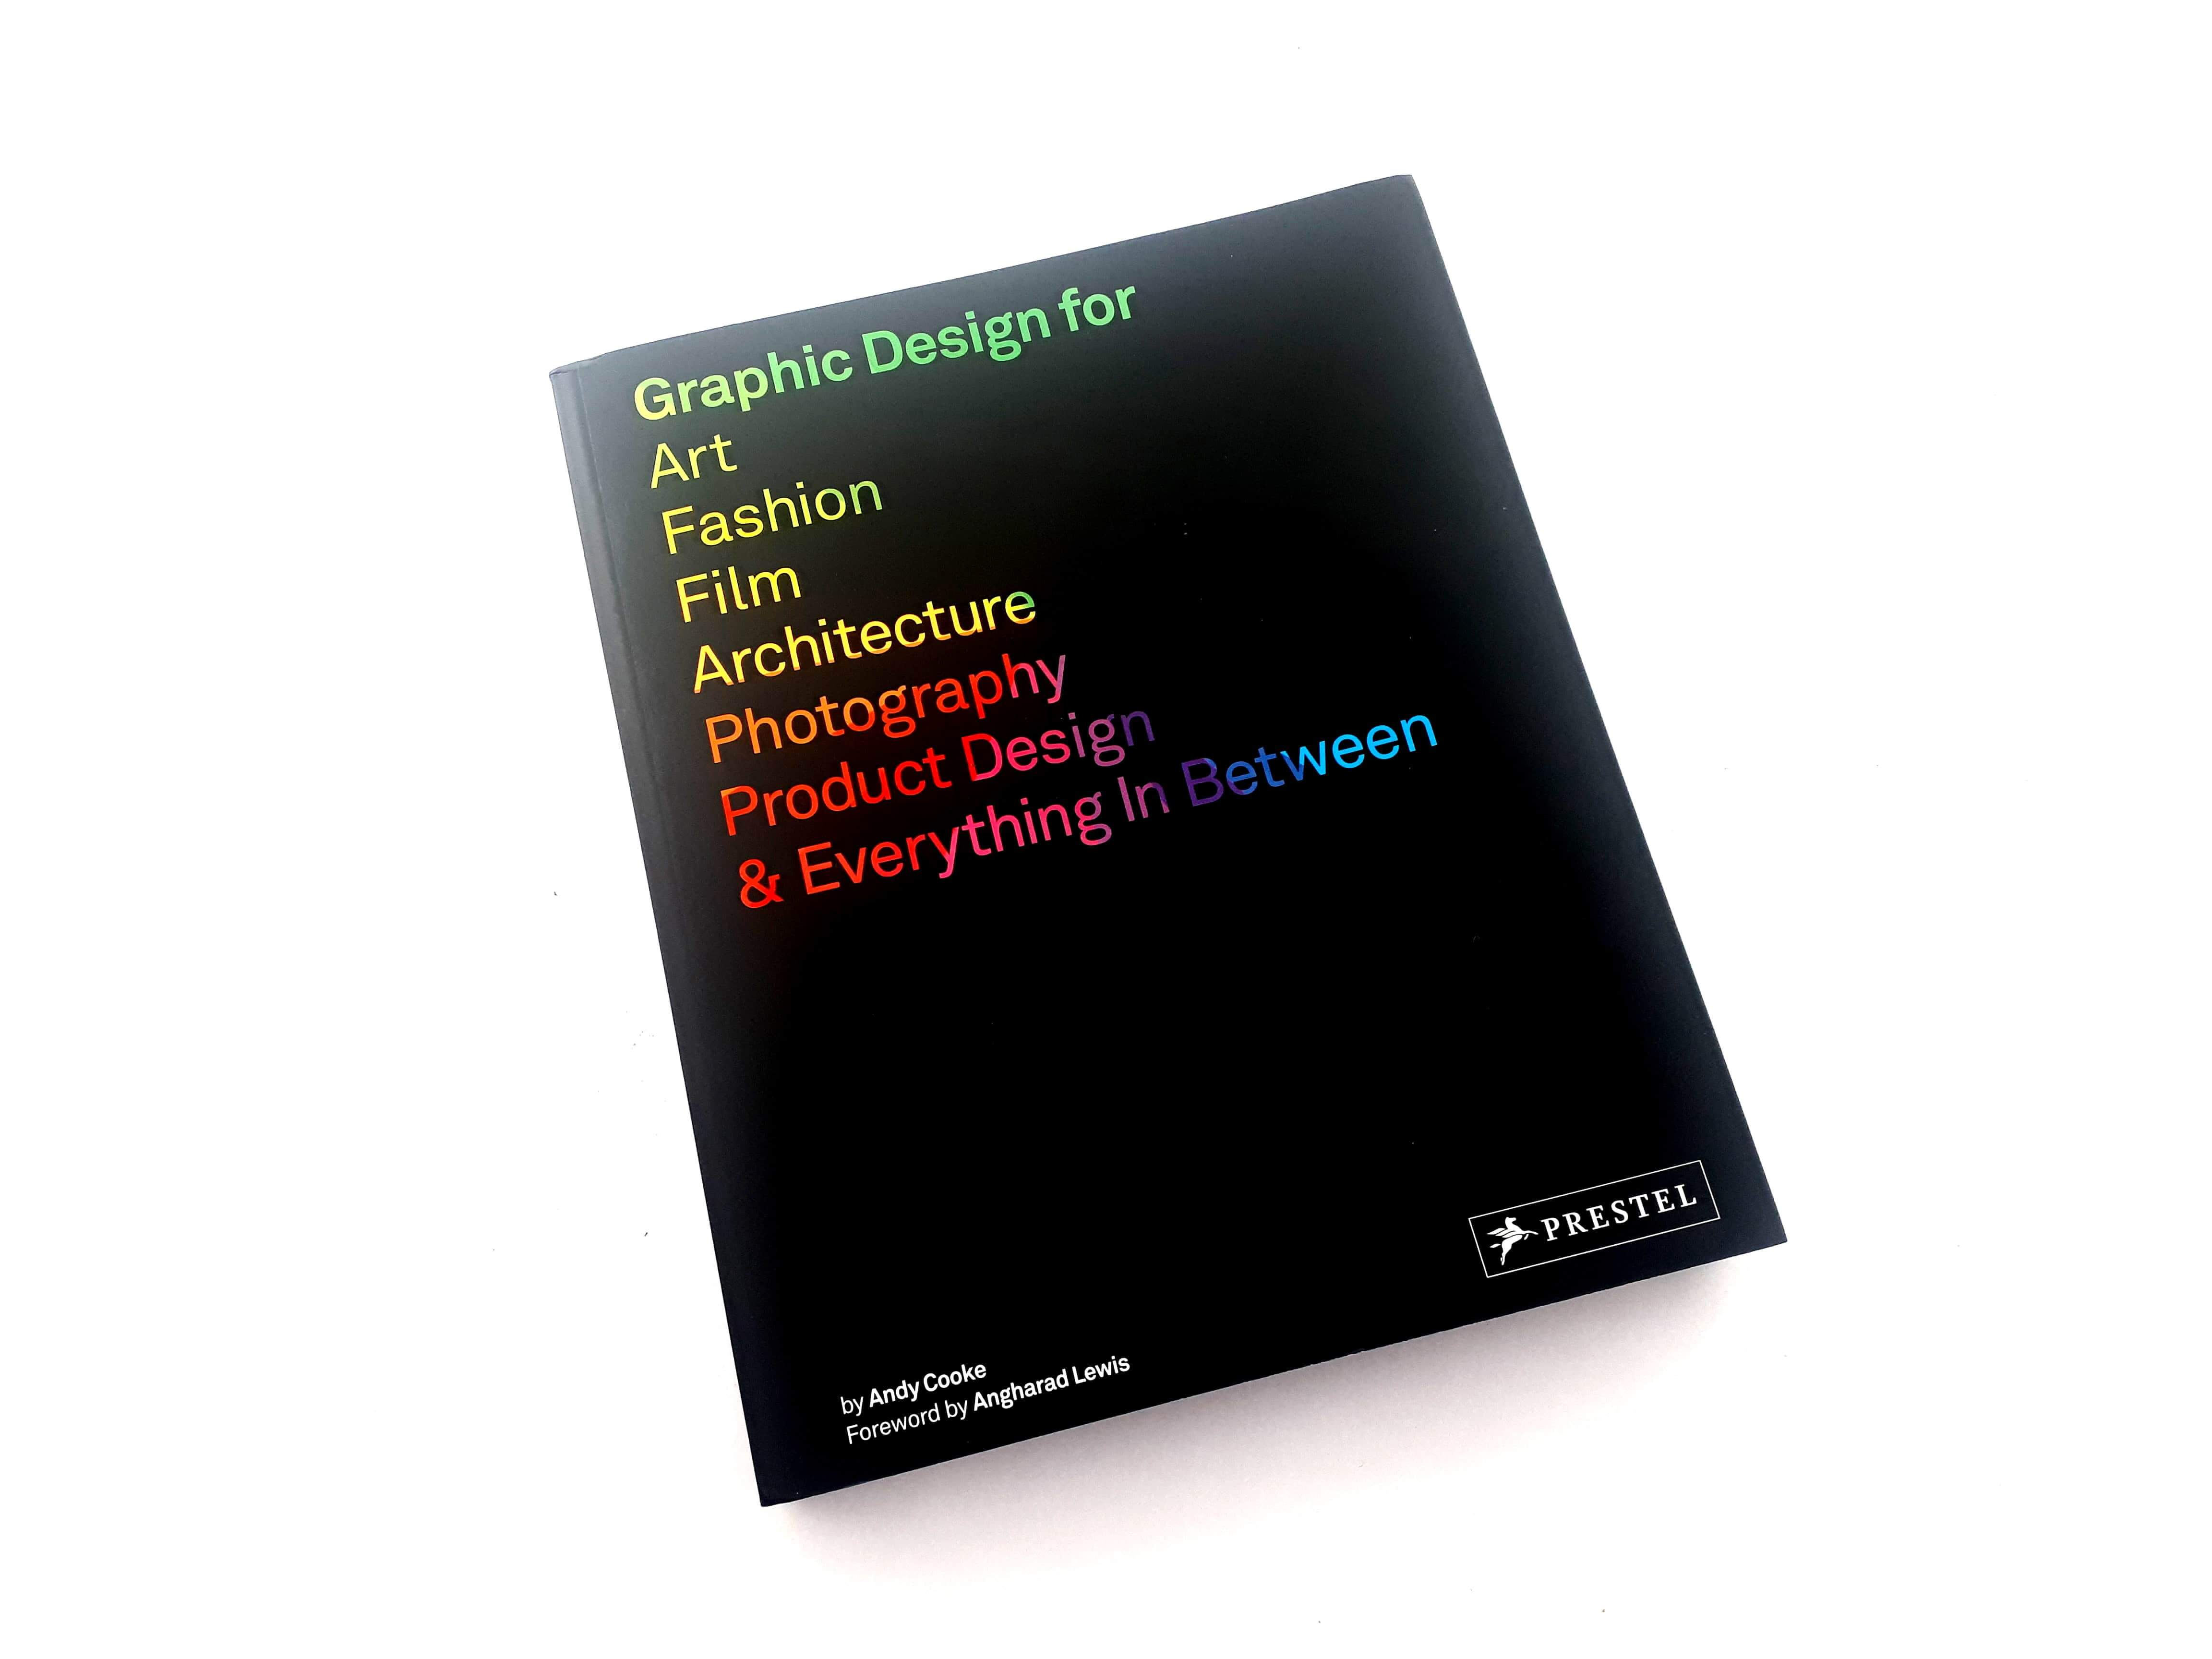 Graphic Design for Art, Fashion, Film, Architecture, Photography, Product Design & Everything In Between by Andy Cooke